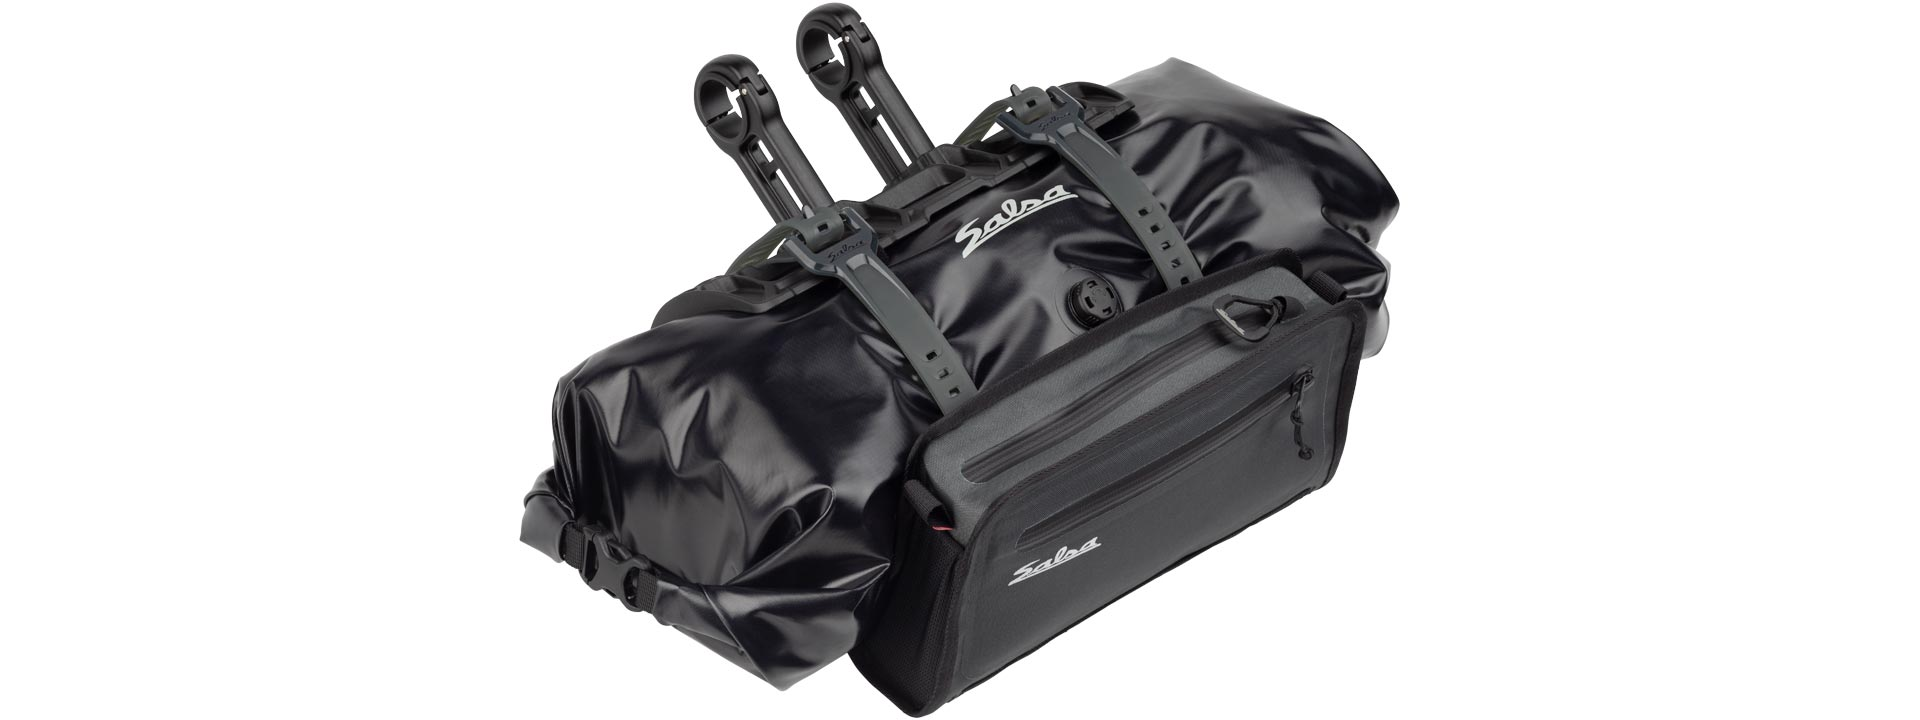 Salsa EXP Series Anything Cradle Side-Load Kit